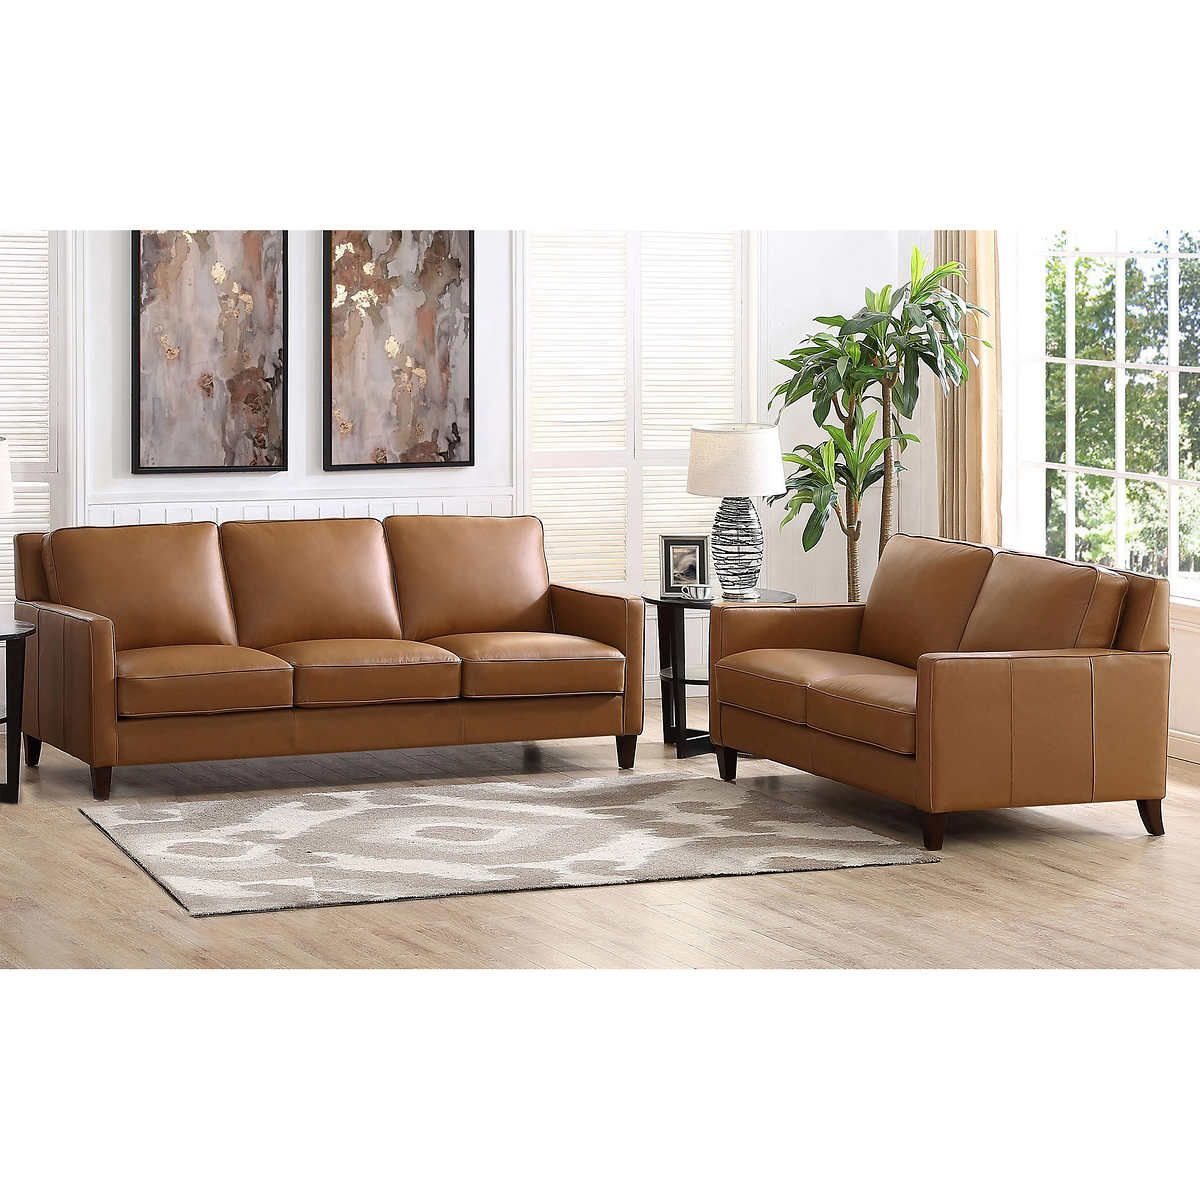 2293 Best Images About Leather Sofas And Living Room: Pin By Jenny Porada On Home